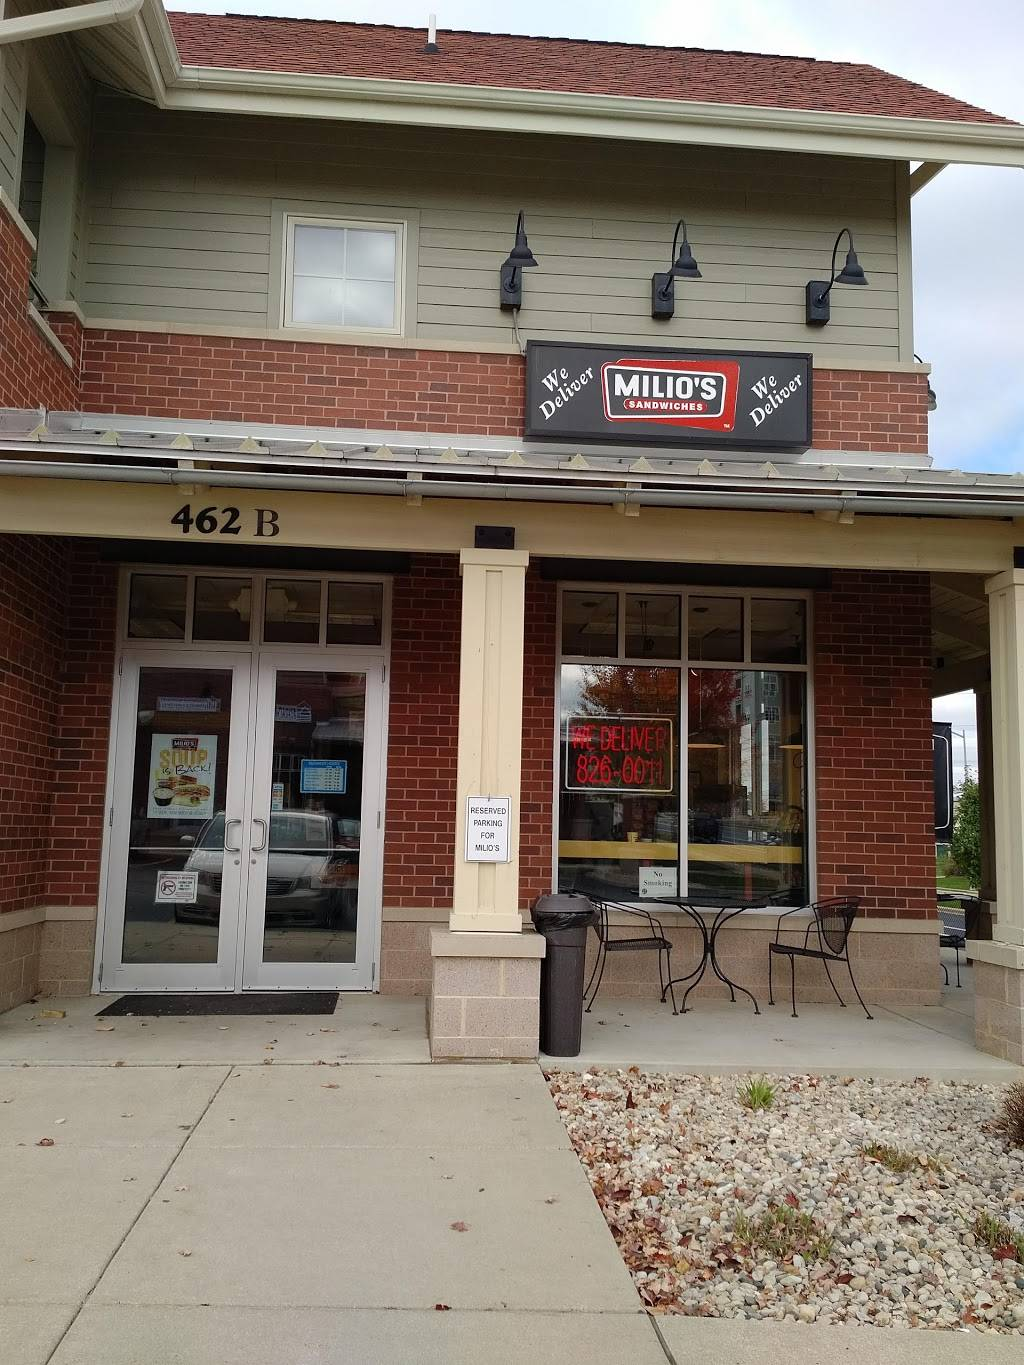 Milios Sandwiches | meal delivery | 5169, 462 Commerce Dr, Madison, WI 53719, USA | 6088260011 OR +1 608-826-0011